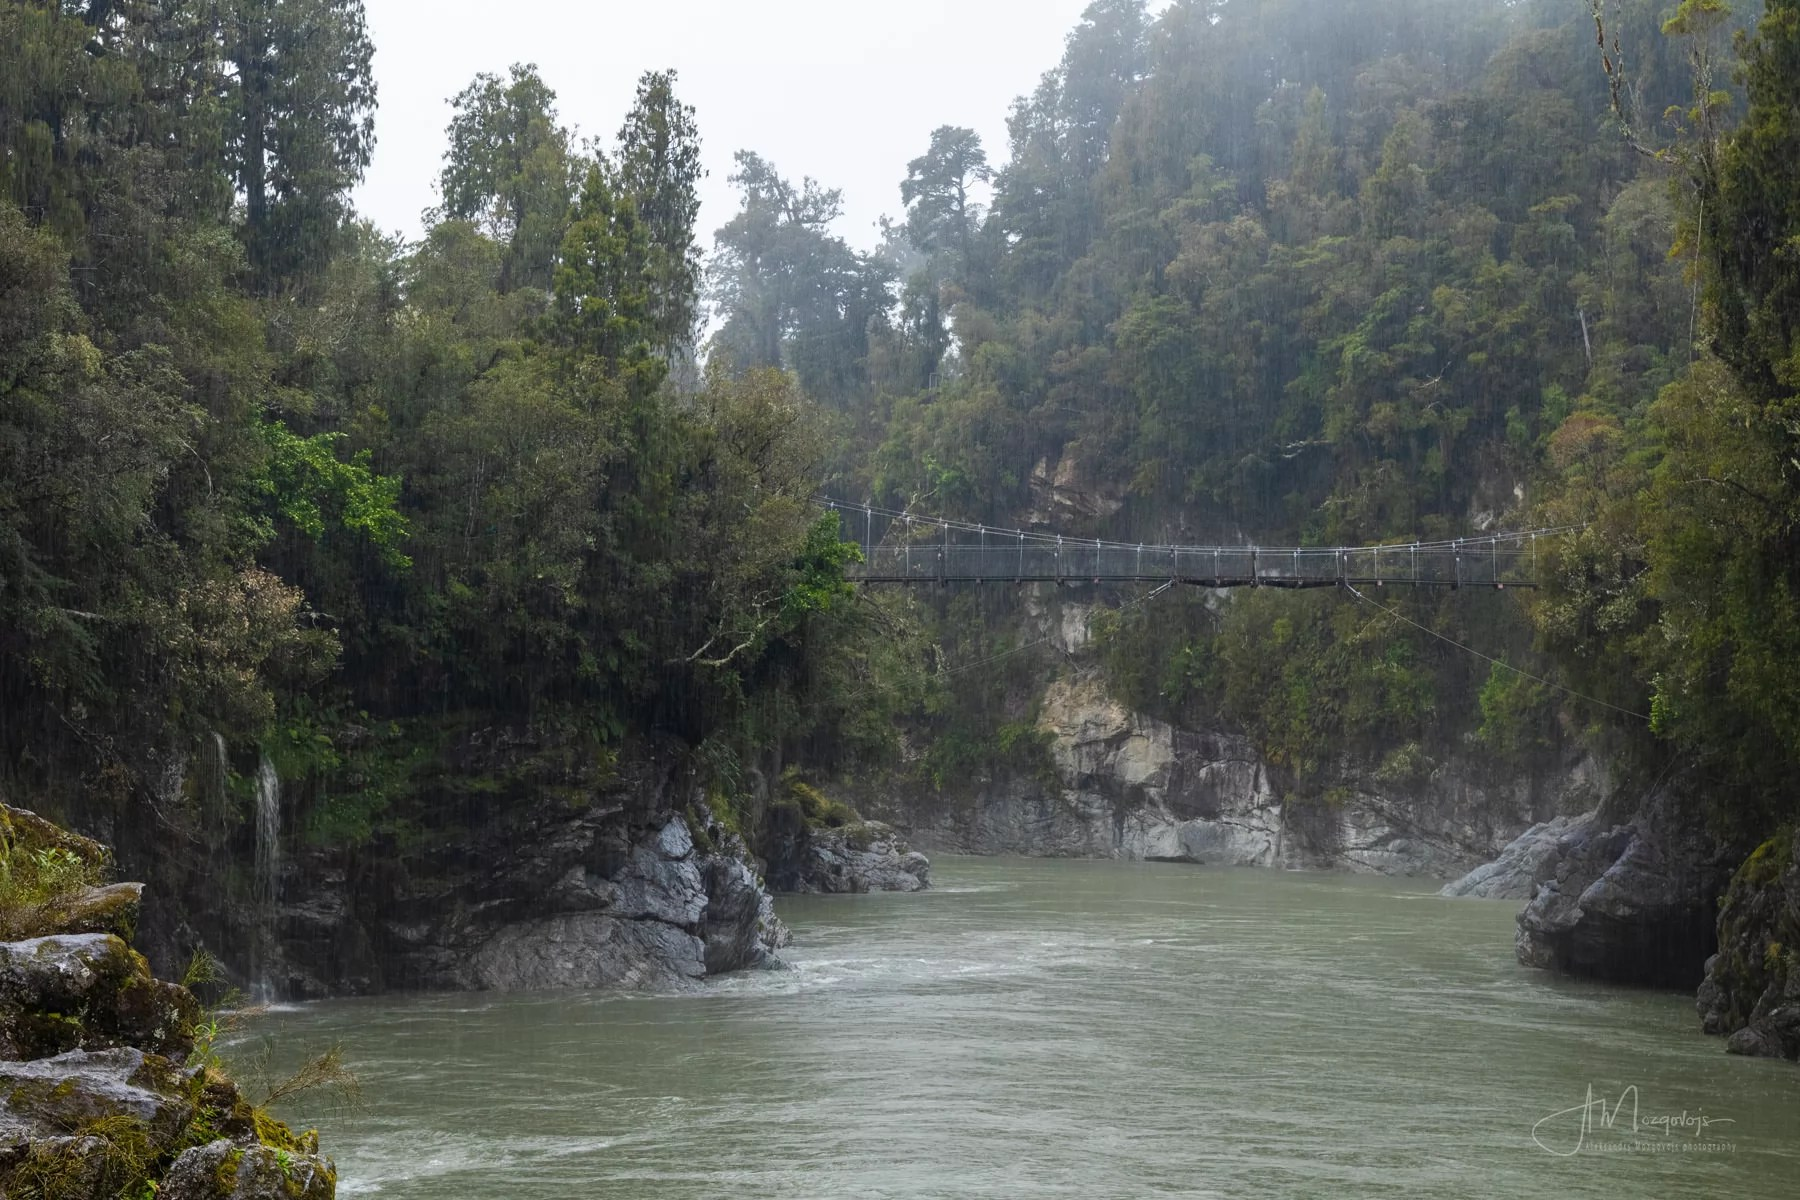 Hokitika gorge under pouring rain